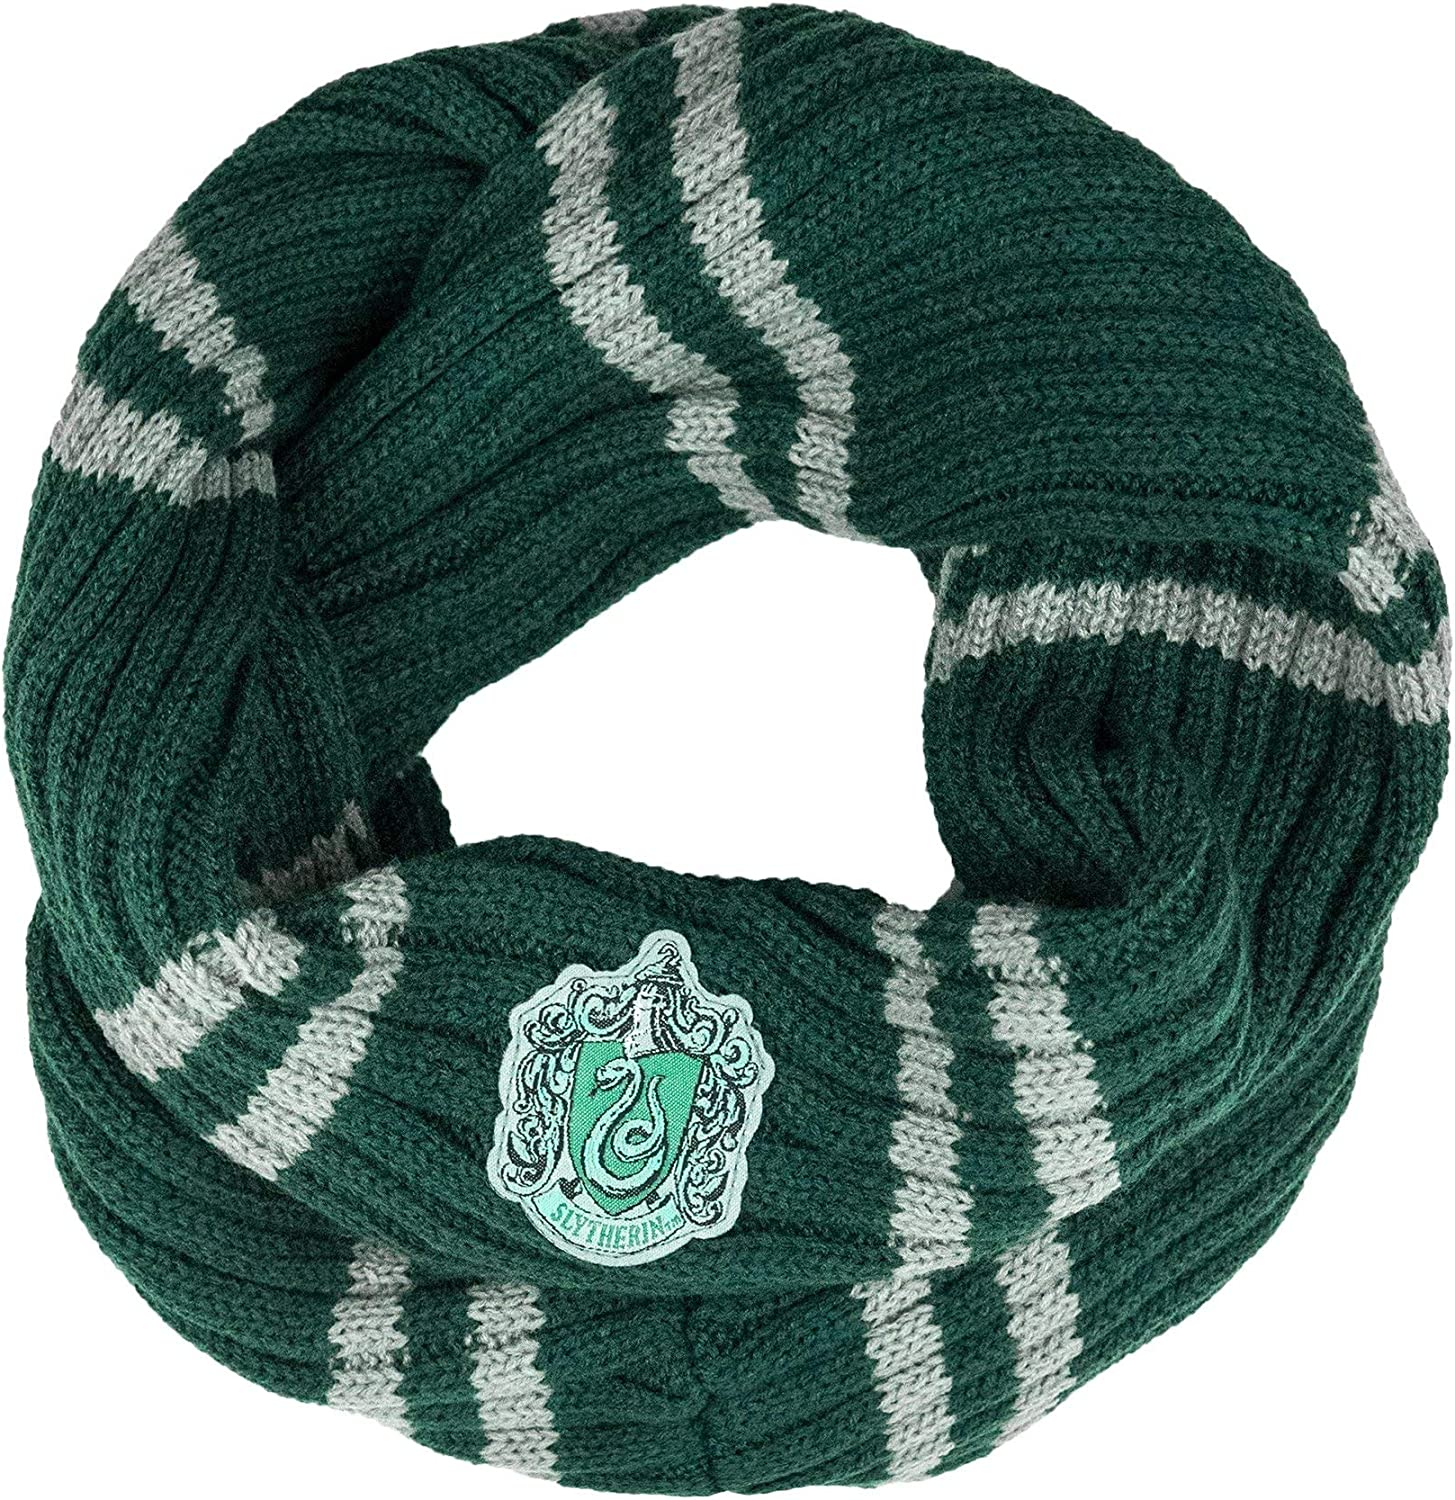 Deluxe Cinereplicas Harry Potter Scarf - So Ultra New life Official Infinity